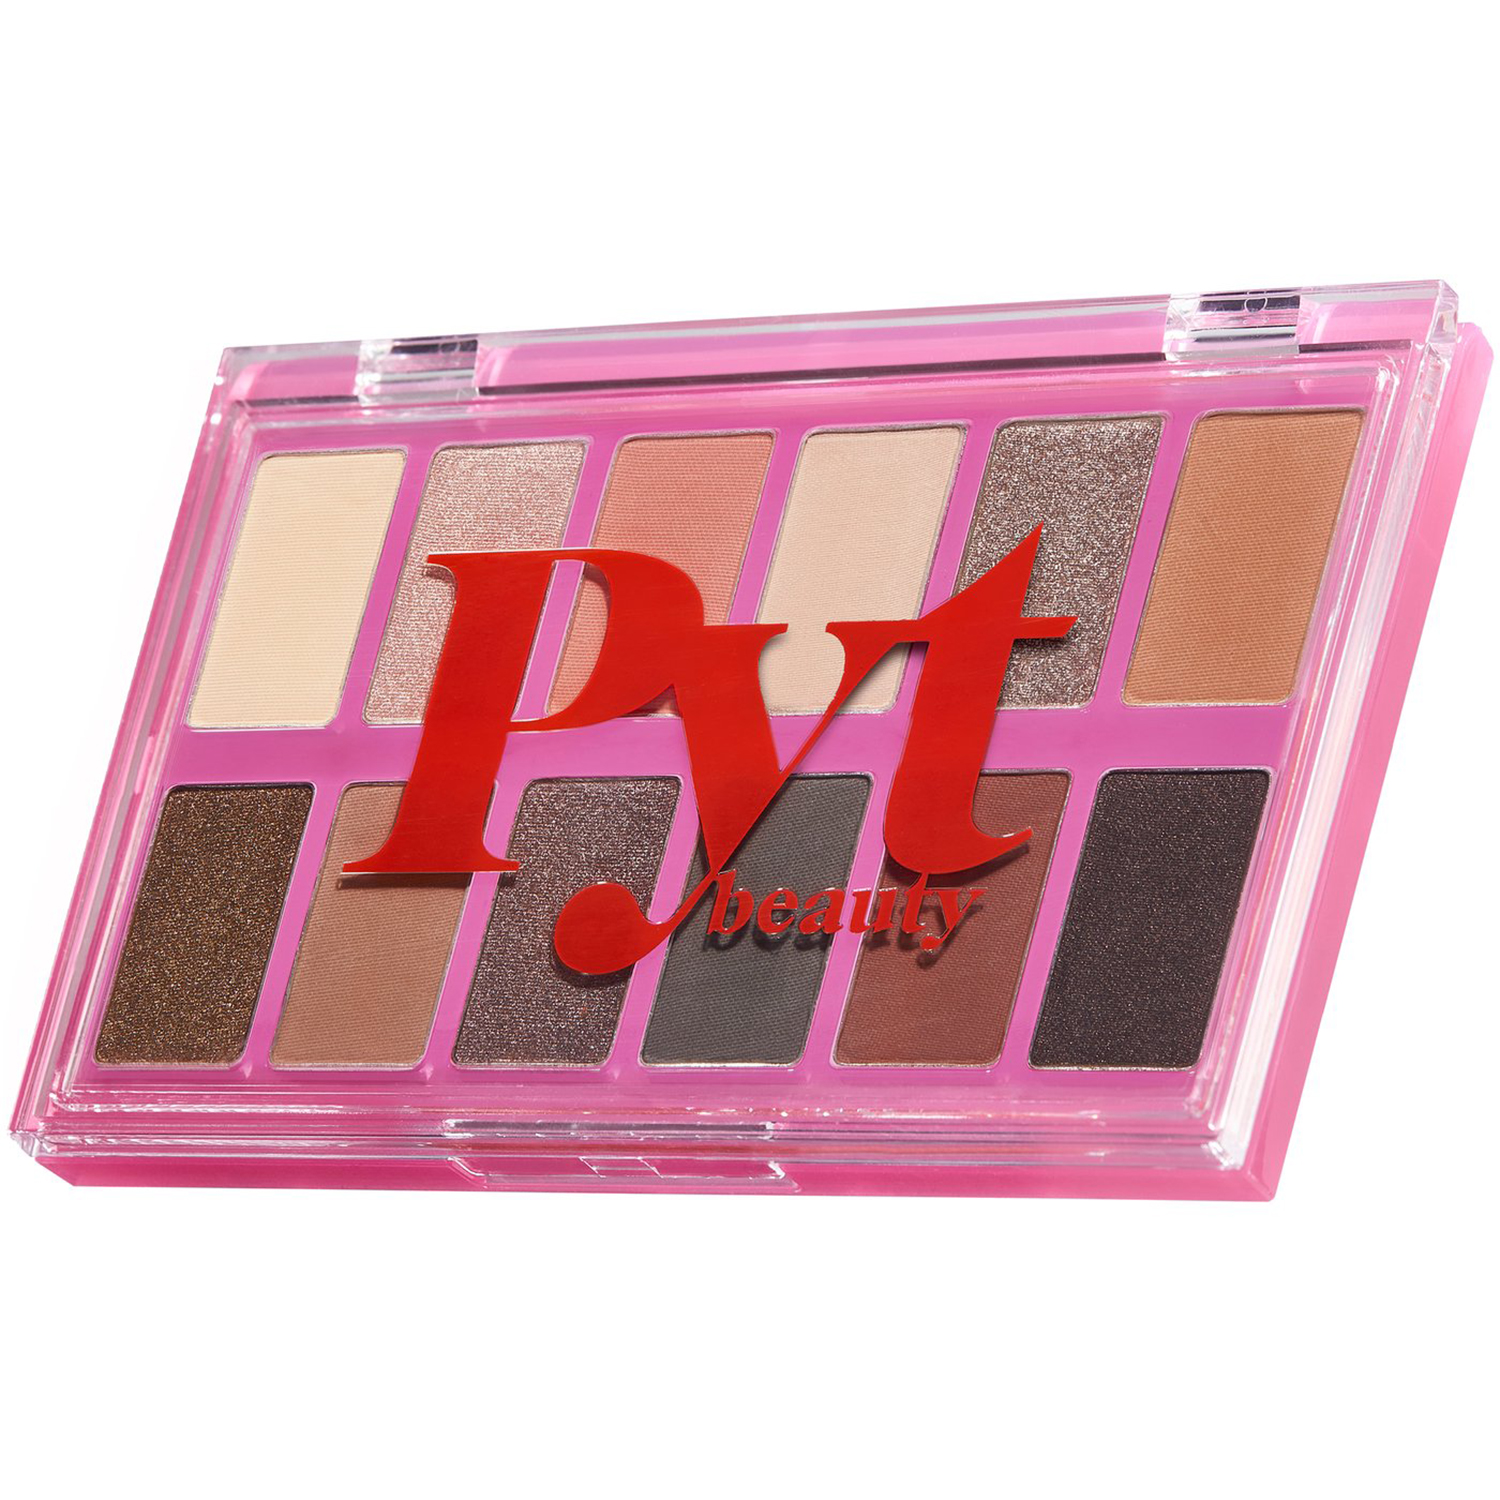 PYT The Upcycle Eyeshadow Palette